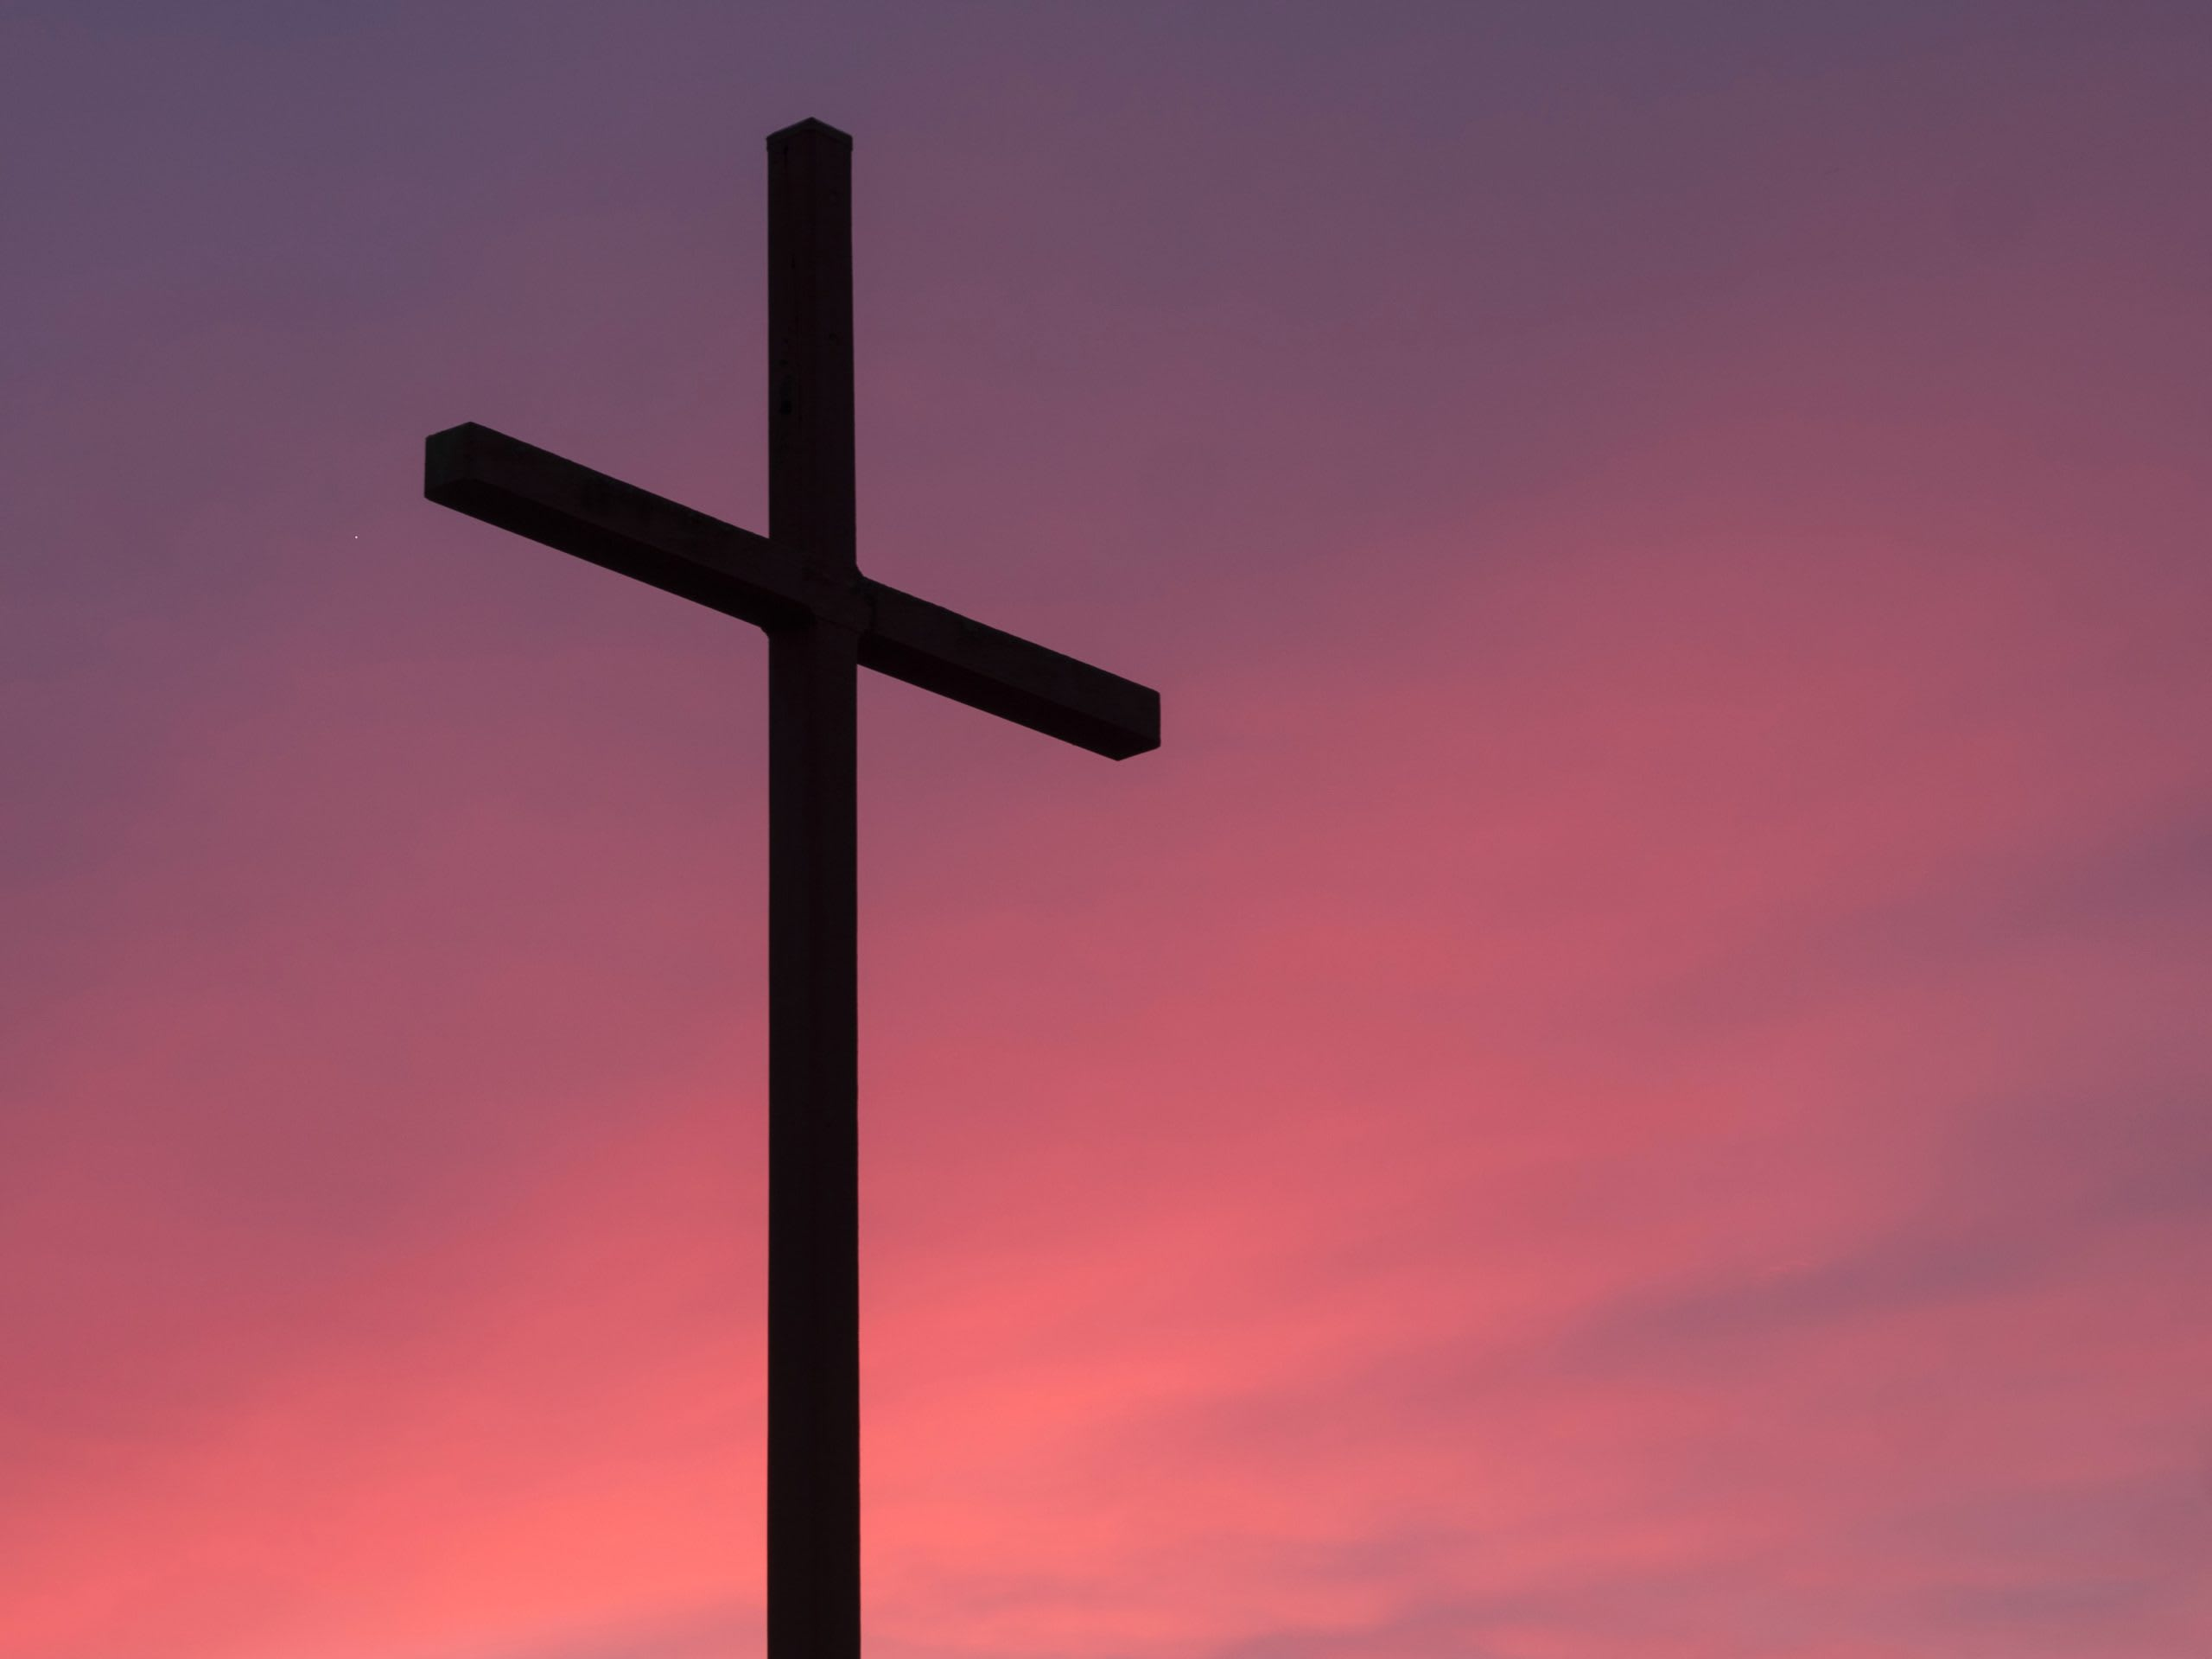 stock image of cross scaled